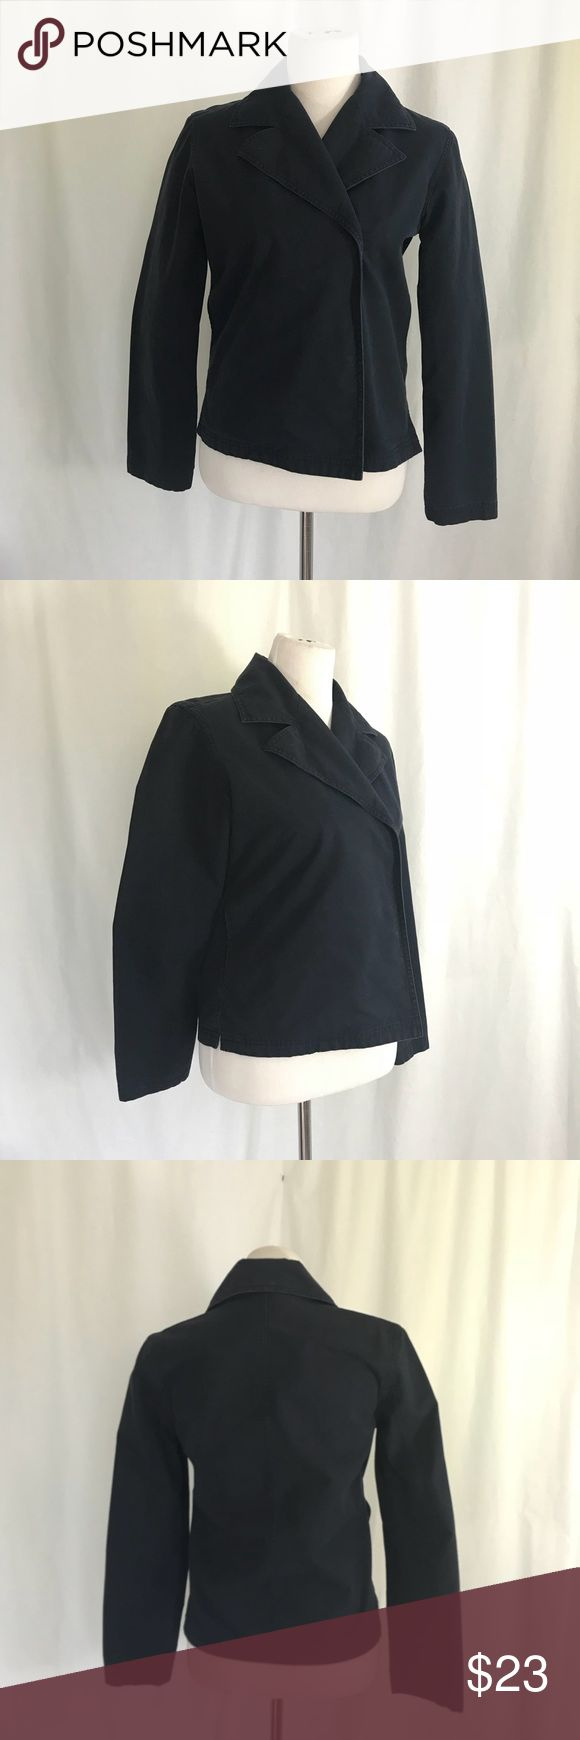 Tommy Hilfiger Navy Canvas Jacket M Great Condition . Lightweight navy jacket. Interior pockets and closes with snaps. Looks lovely when drapes open as well . One tiny mark to lapel where a pin was placed. See photo. Size M Shown on size 6 dress form, Bust 36 Waist 36 Length 23 Tommy Hilfiger Jackets & Coats